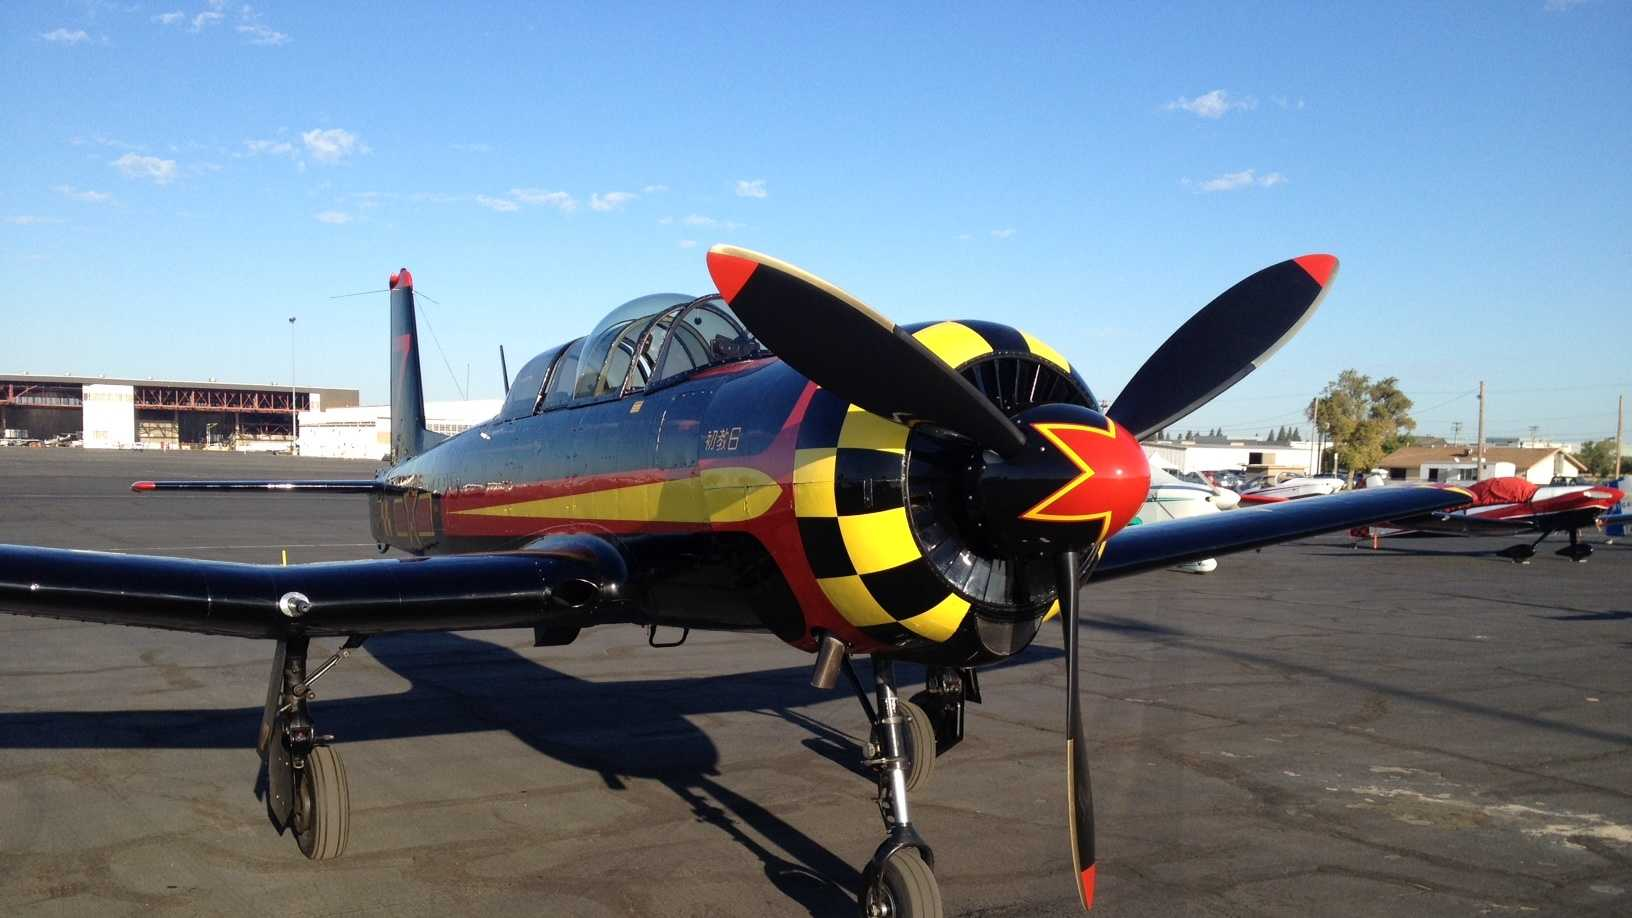 SomeThunderbirdpilots took a break from preparing for the airshow and spoke to students.